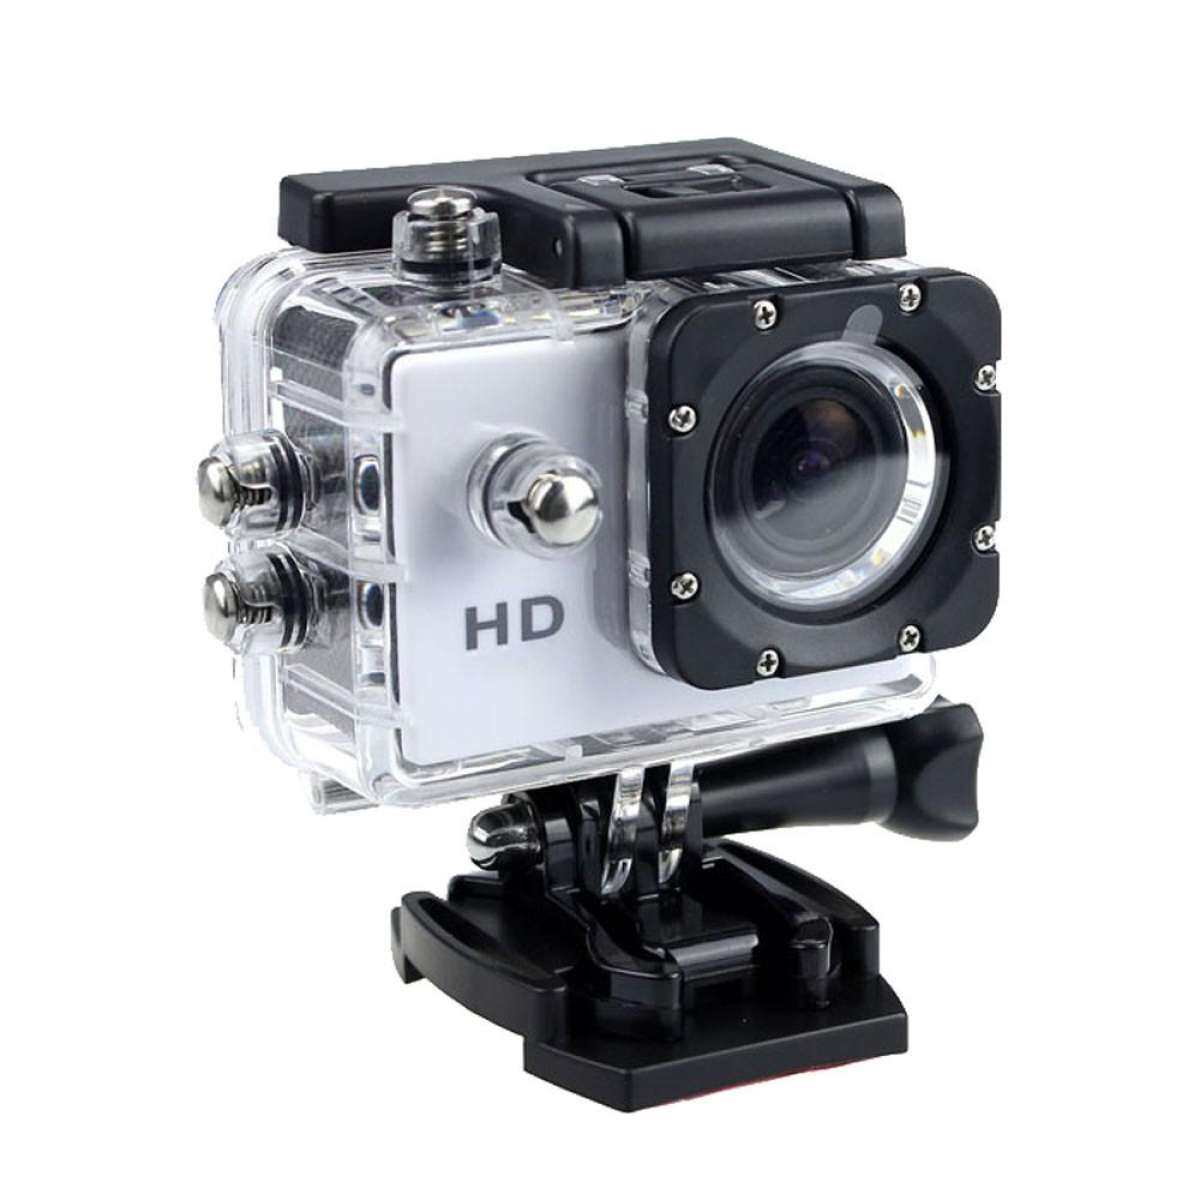 SJ5000 Waterproof Sports DV Action HD 1080P Camera Pro Camcorder Recorder Cam